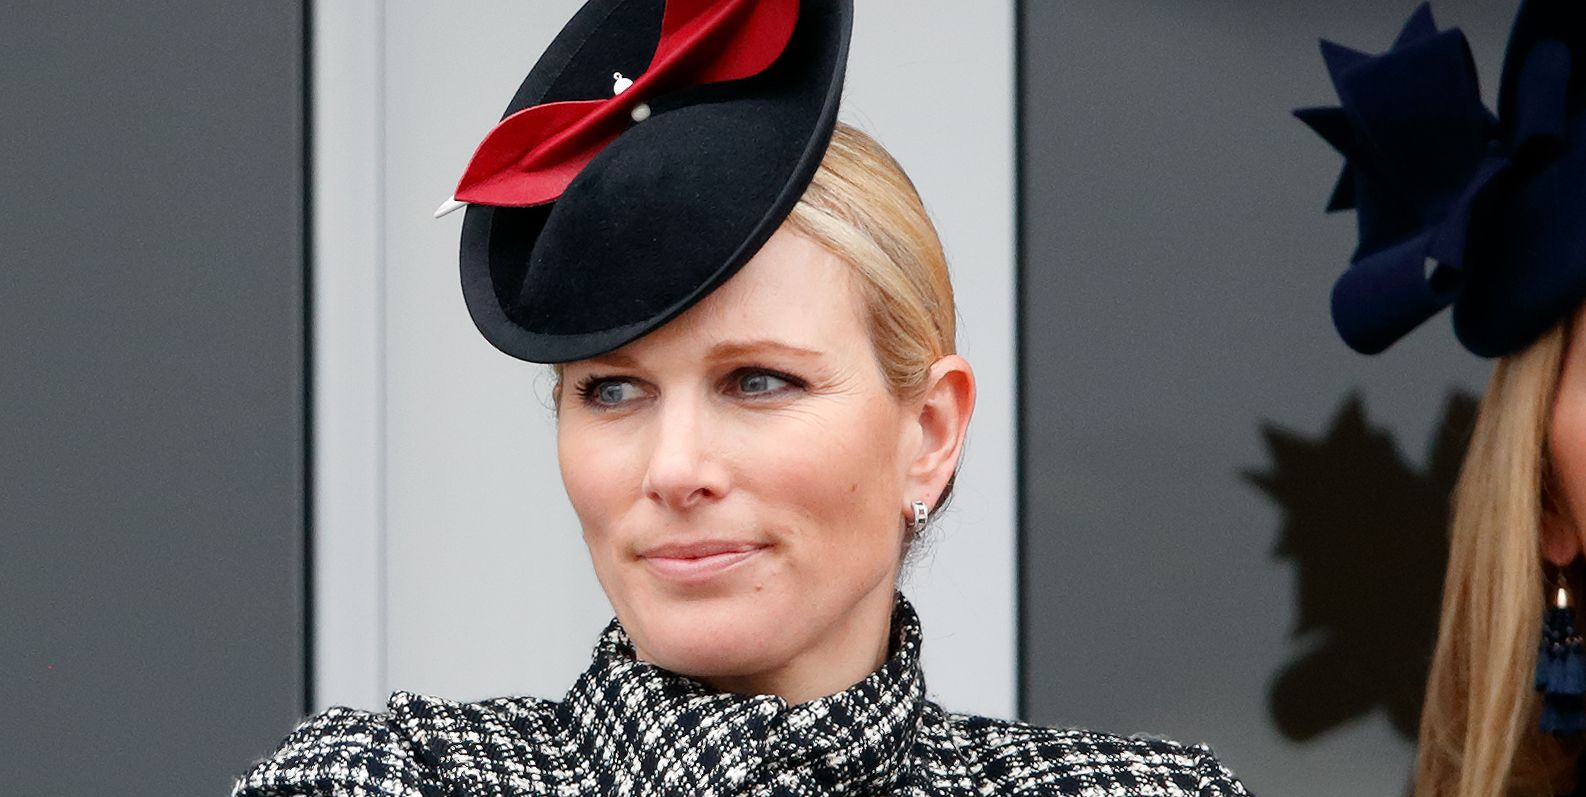 Zara Tindall (née Phillips) is the granddaughter of the Queen and daughter of the inimitable Princess Anne, the hardest working member of the royal family. While Zara's style choices may not be as attention-getting as those of than her cousins Beatrice and Eugenie , she has a tailored and refined sensibility all her own.